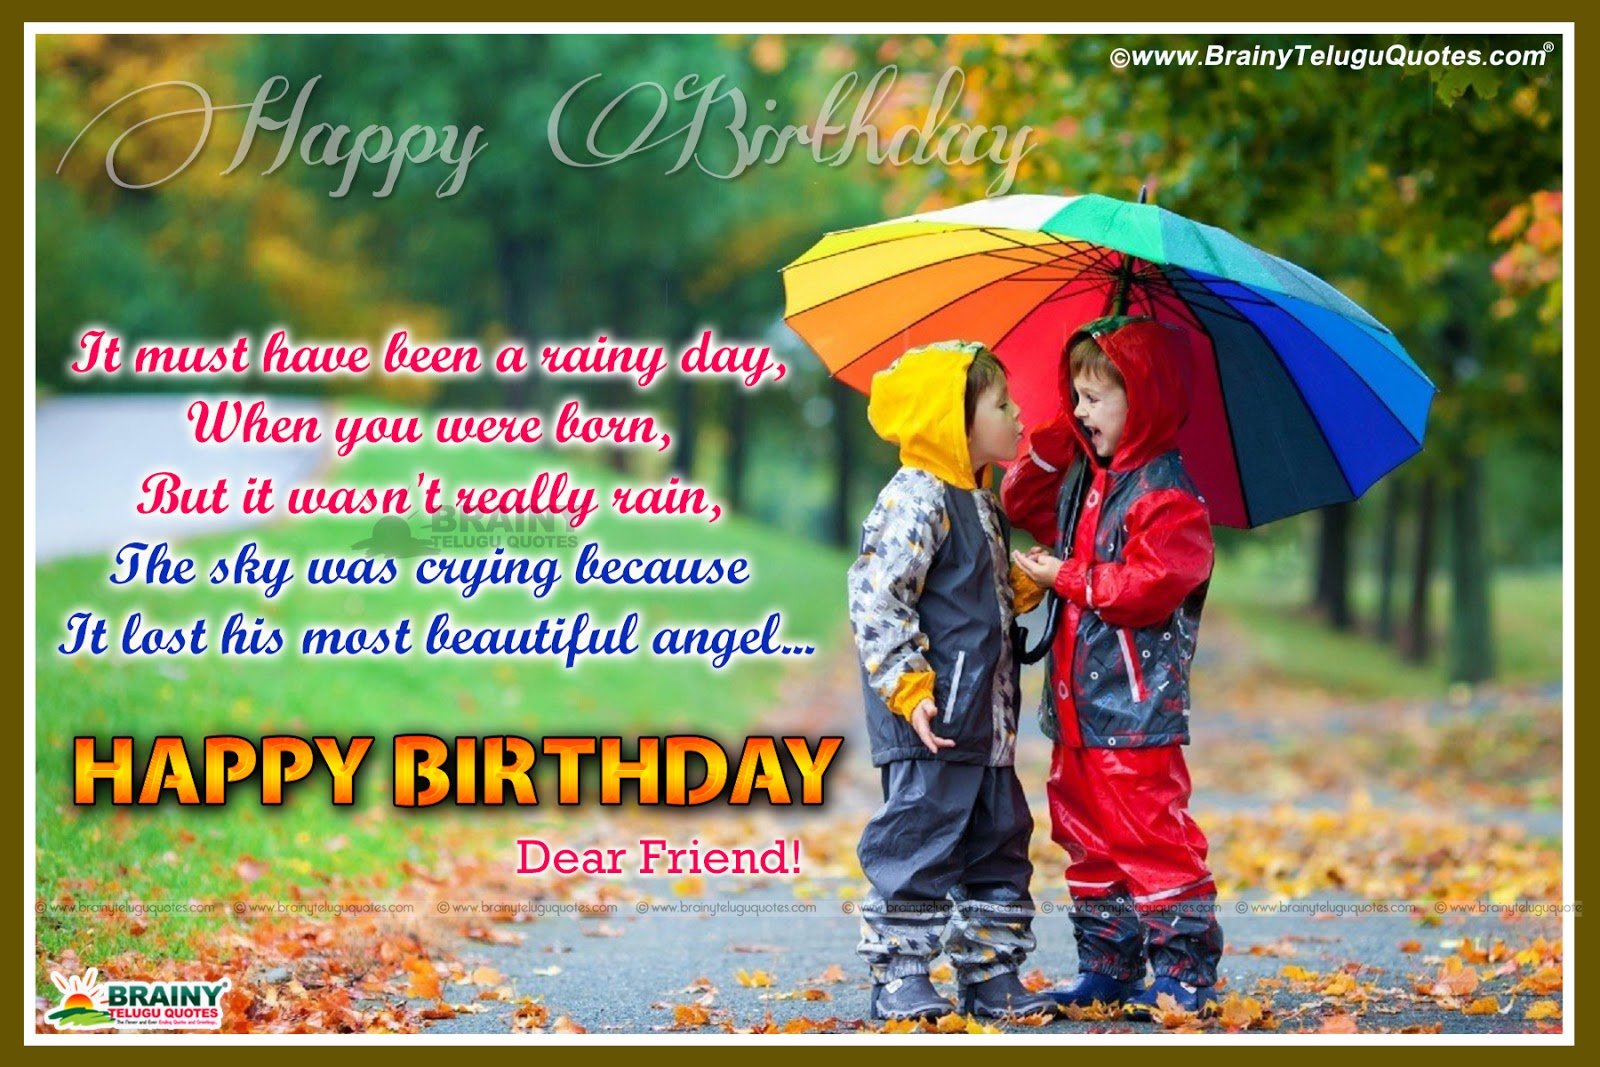 Best Birthday Quotes For Friend In English: Happy Birthday My Dear Friend Quotes Wishes Greetings